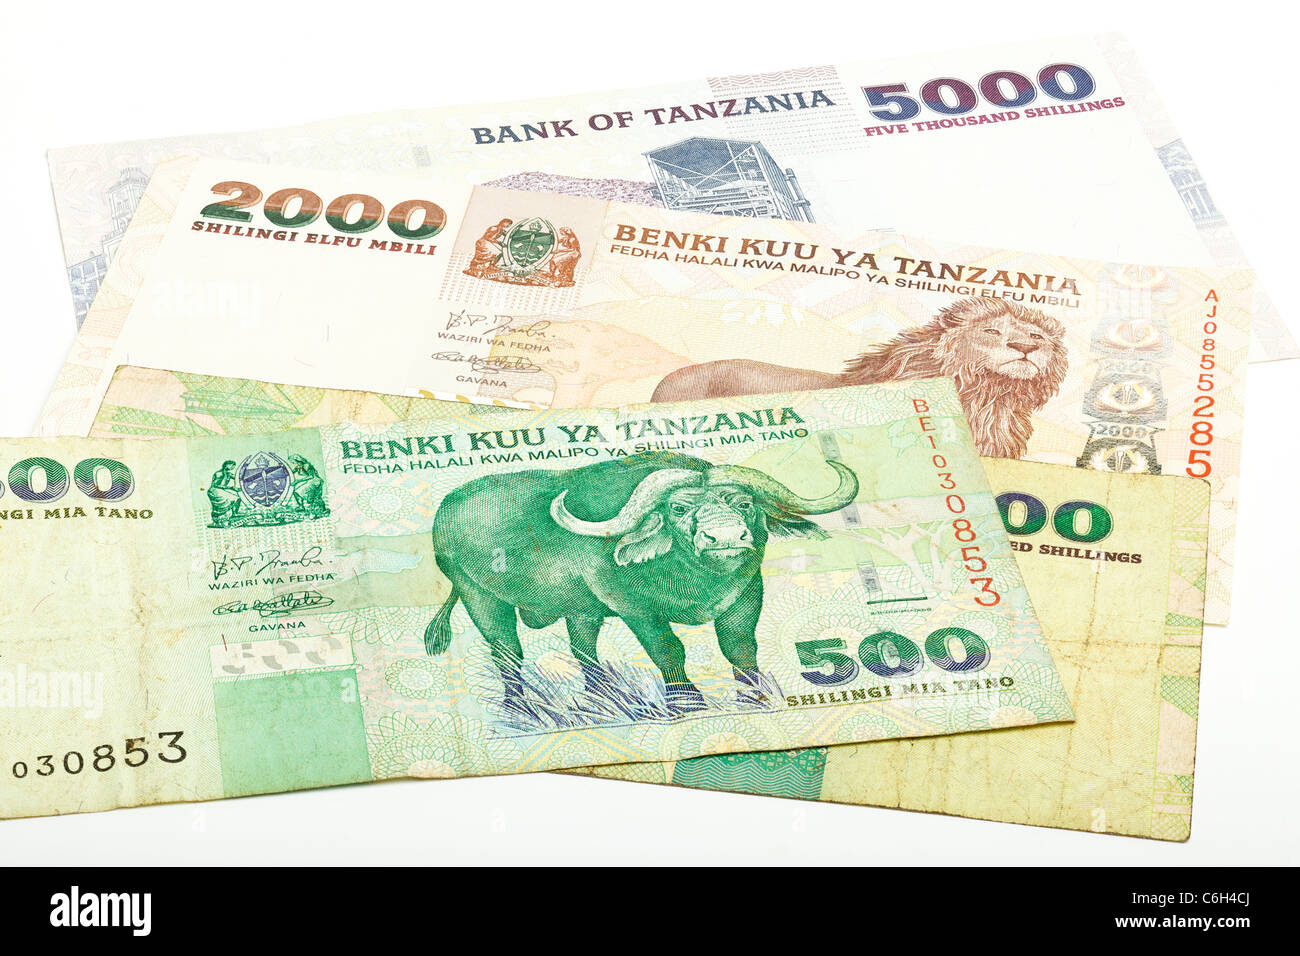 Tanzanian currency on a white background - Stock Image